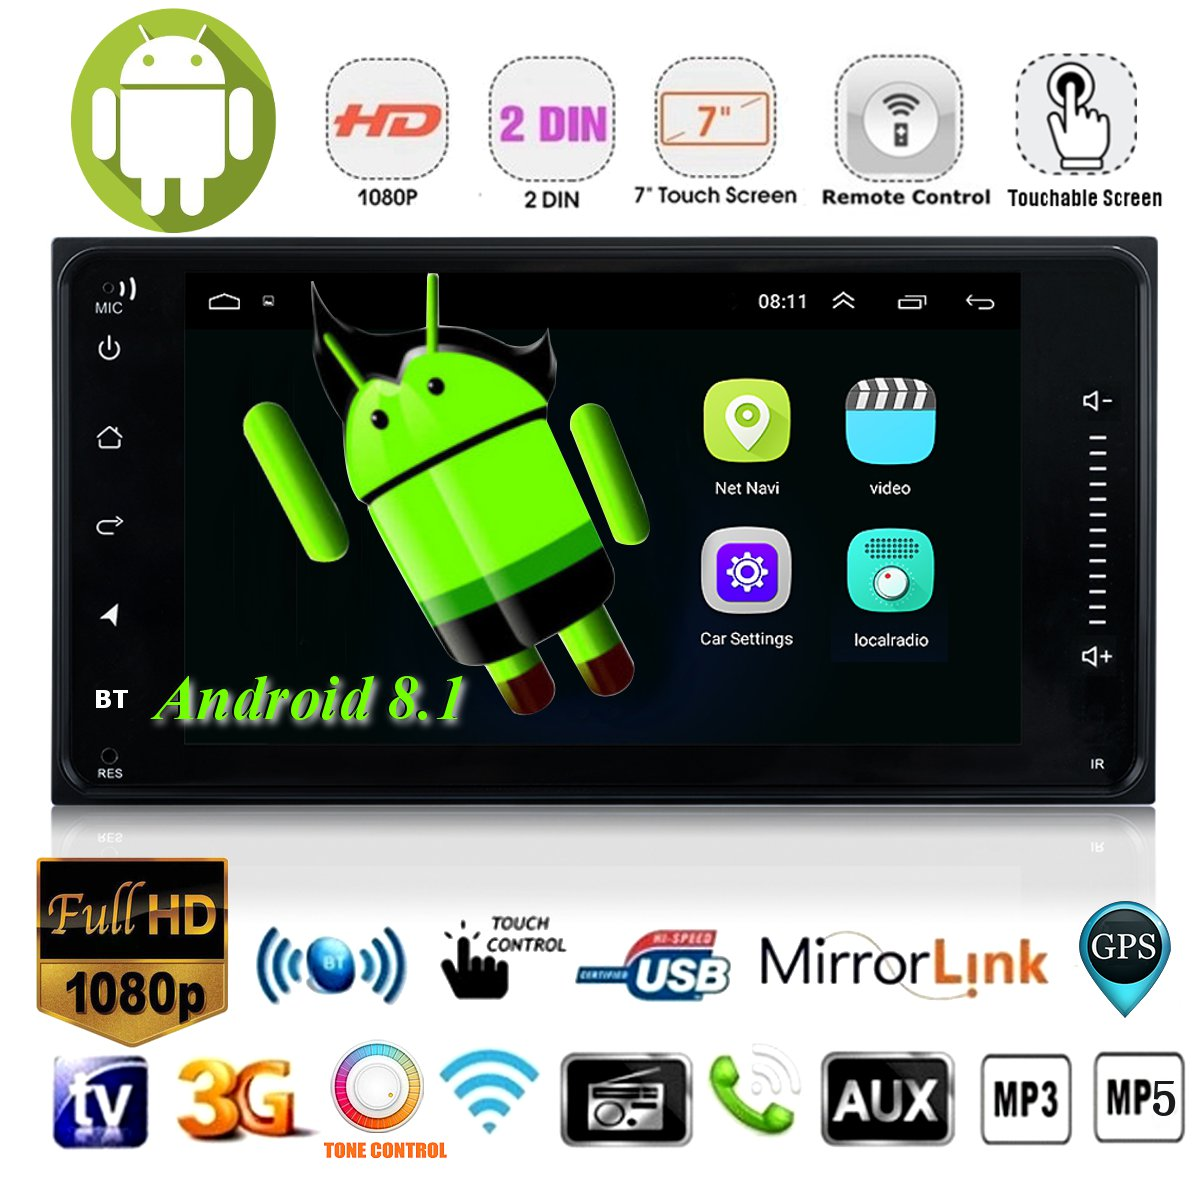 7 2 Din Android 8.1 Car DVD Player Navigation WIFI GPS Stereo bluetooth Radio Indash With Camera For Toyota Corolla Hilux RAV47 2 Din Android 8.1 Car DVD Player Navigation WIFI GPS Stereo bluetooth Radio Indash With Camera For Toyota Corolla Hilux RAV4